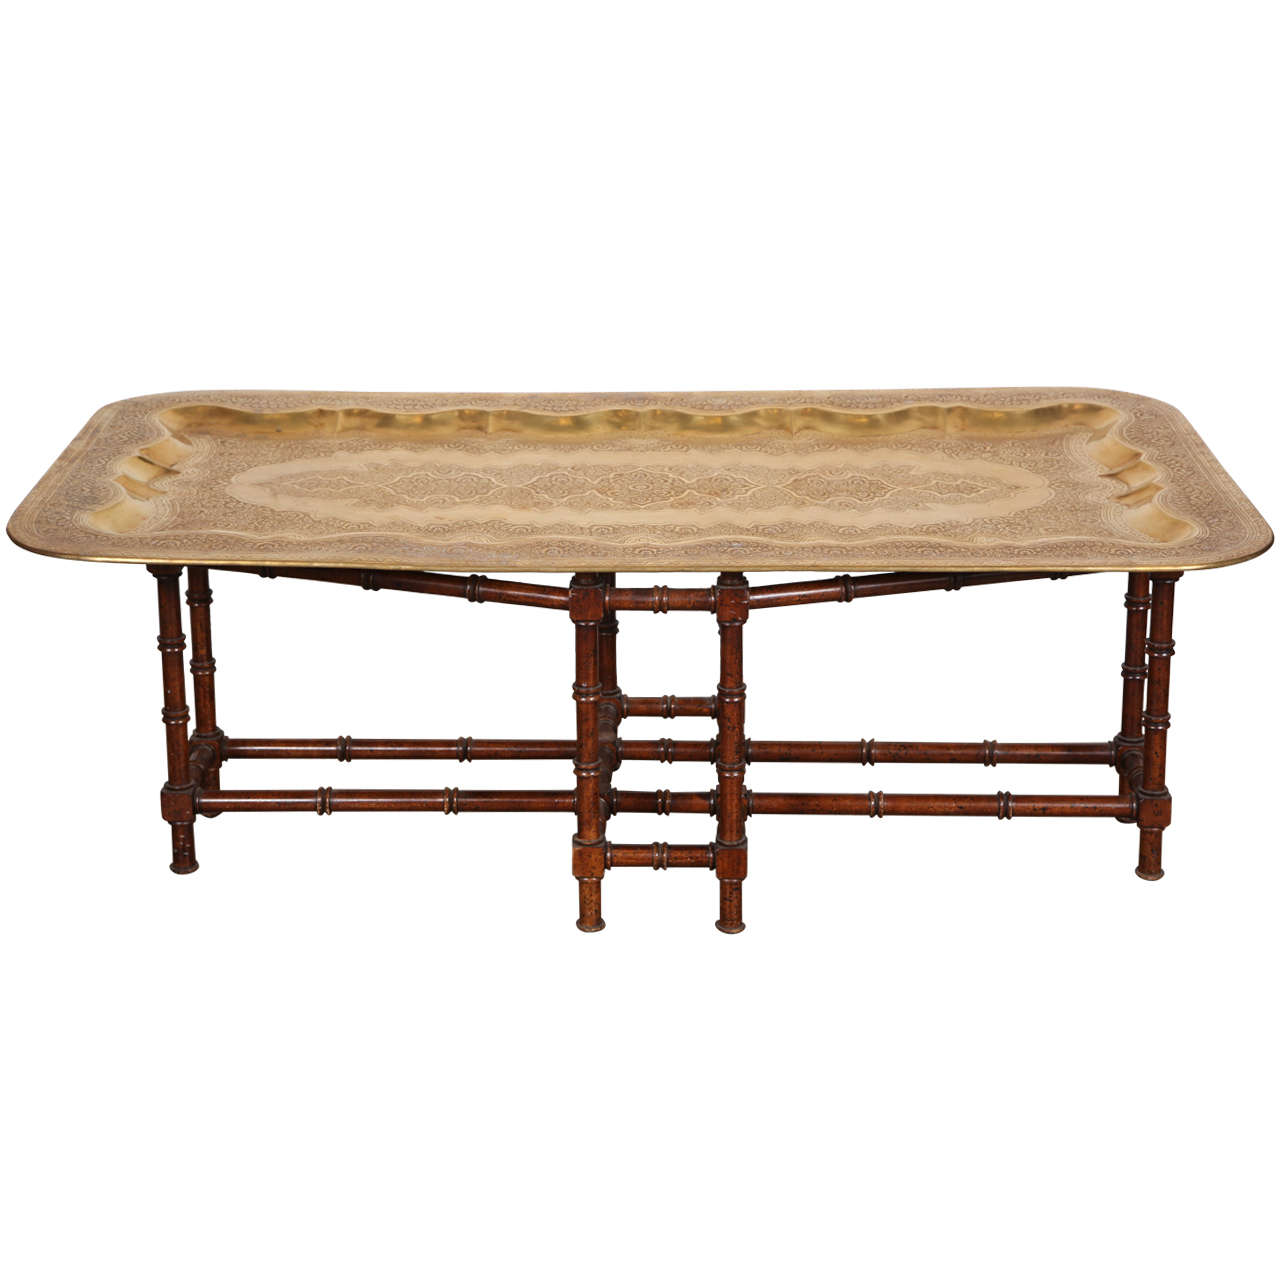 Mid-Century Rectangular Brass Tray Coffee Table At 1stdibs